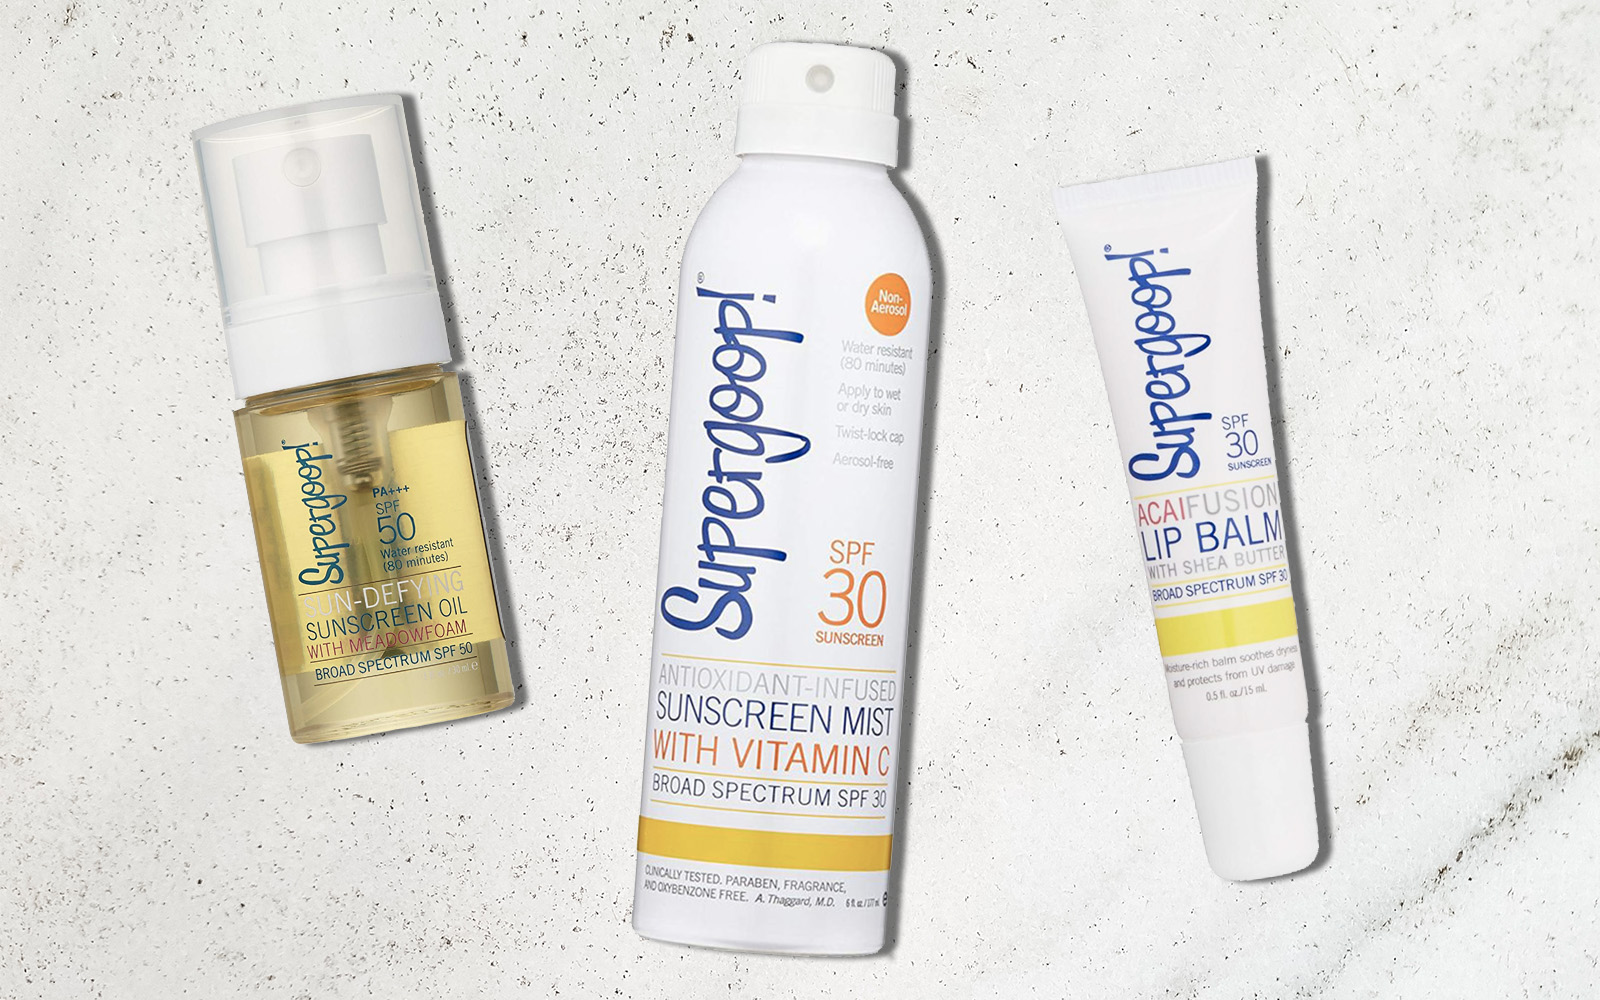 Cult-favorite Sunscreen Brand Supergoop Is Mega Cheap on Amazon Right Now — Starting at $6